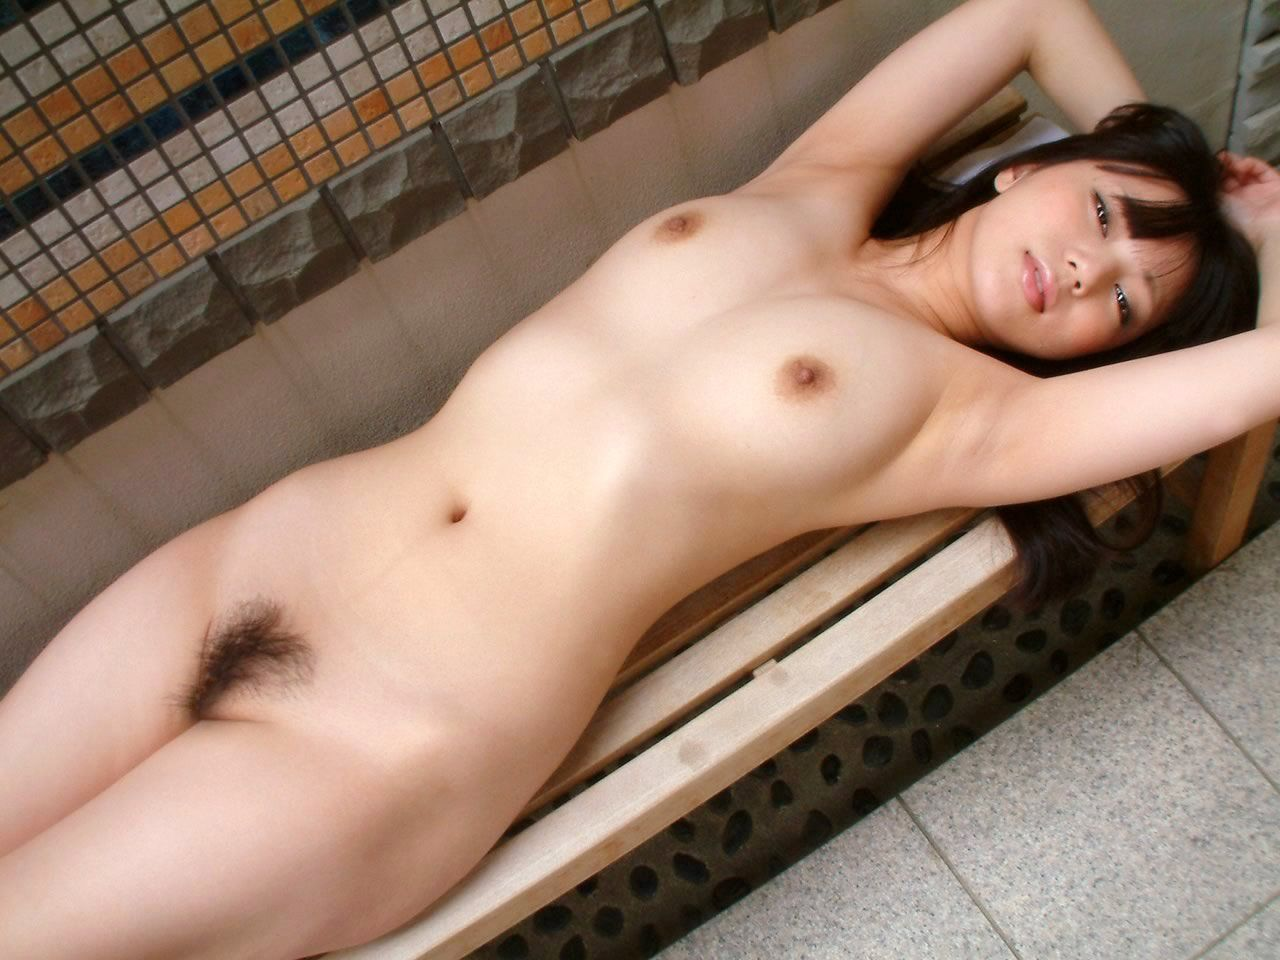 Japani nagi girls photo, thin girl fuck big cock